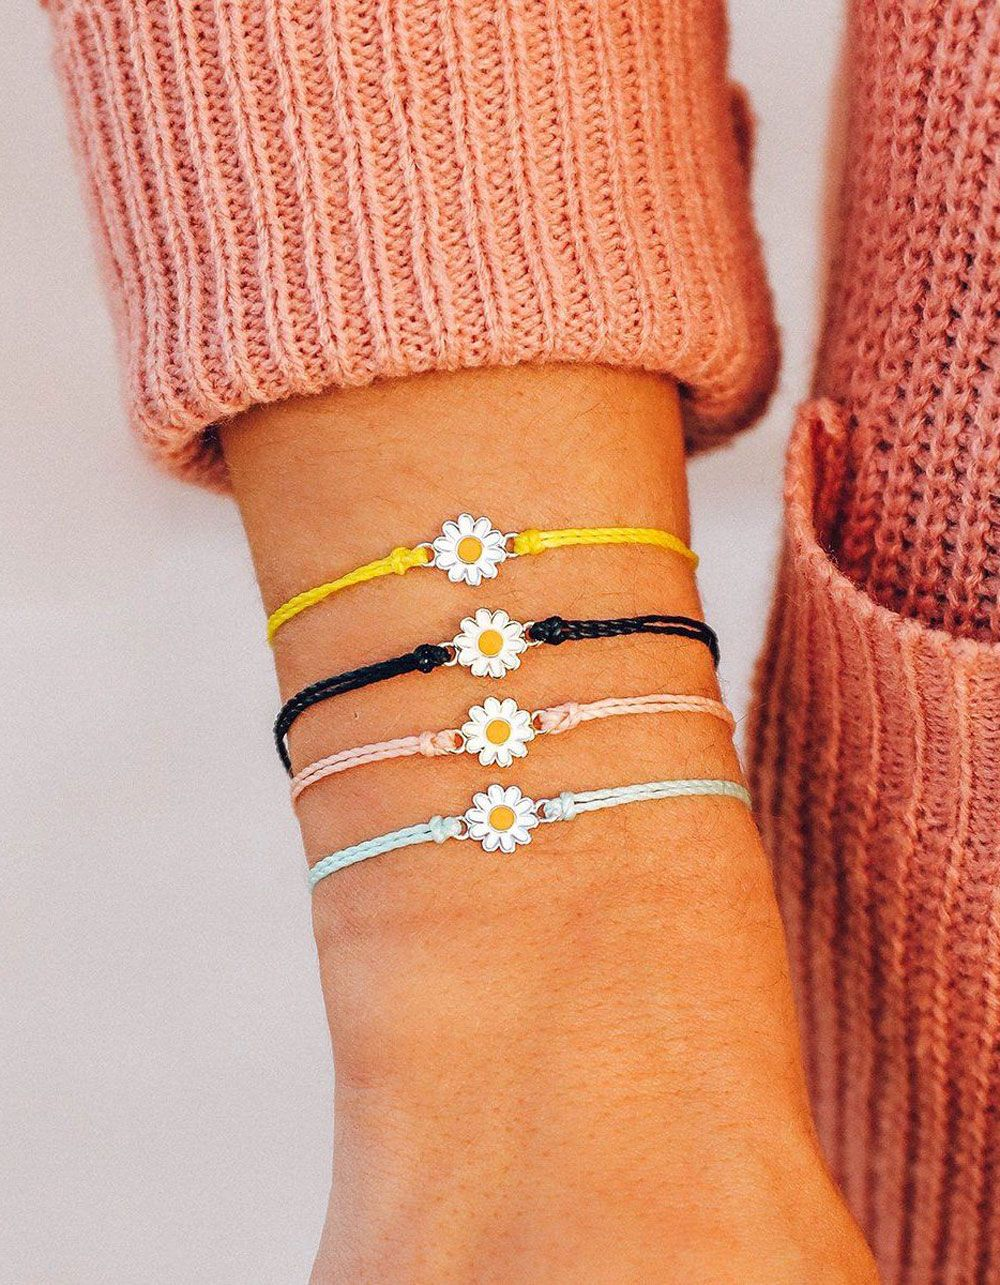 The Adjustable Band Bangle Bracelet featuring the Yellow Daisy